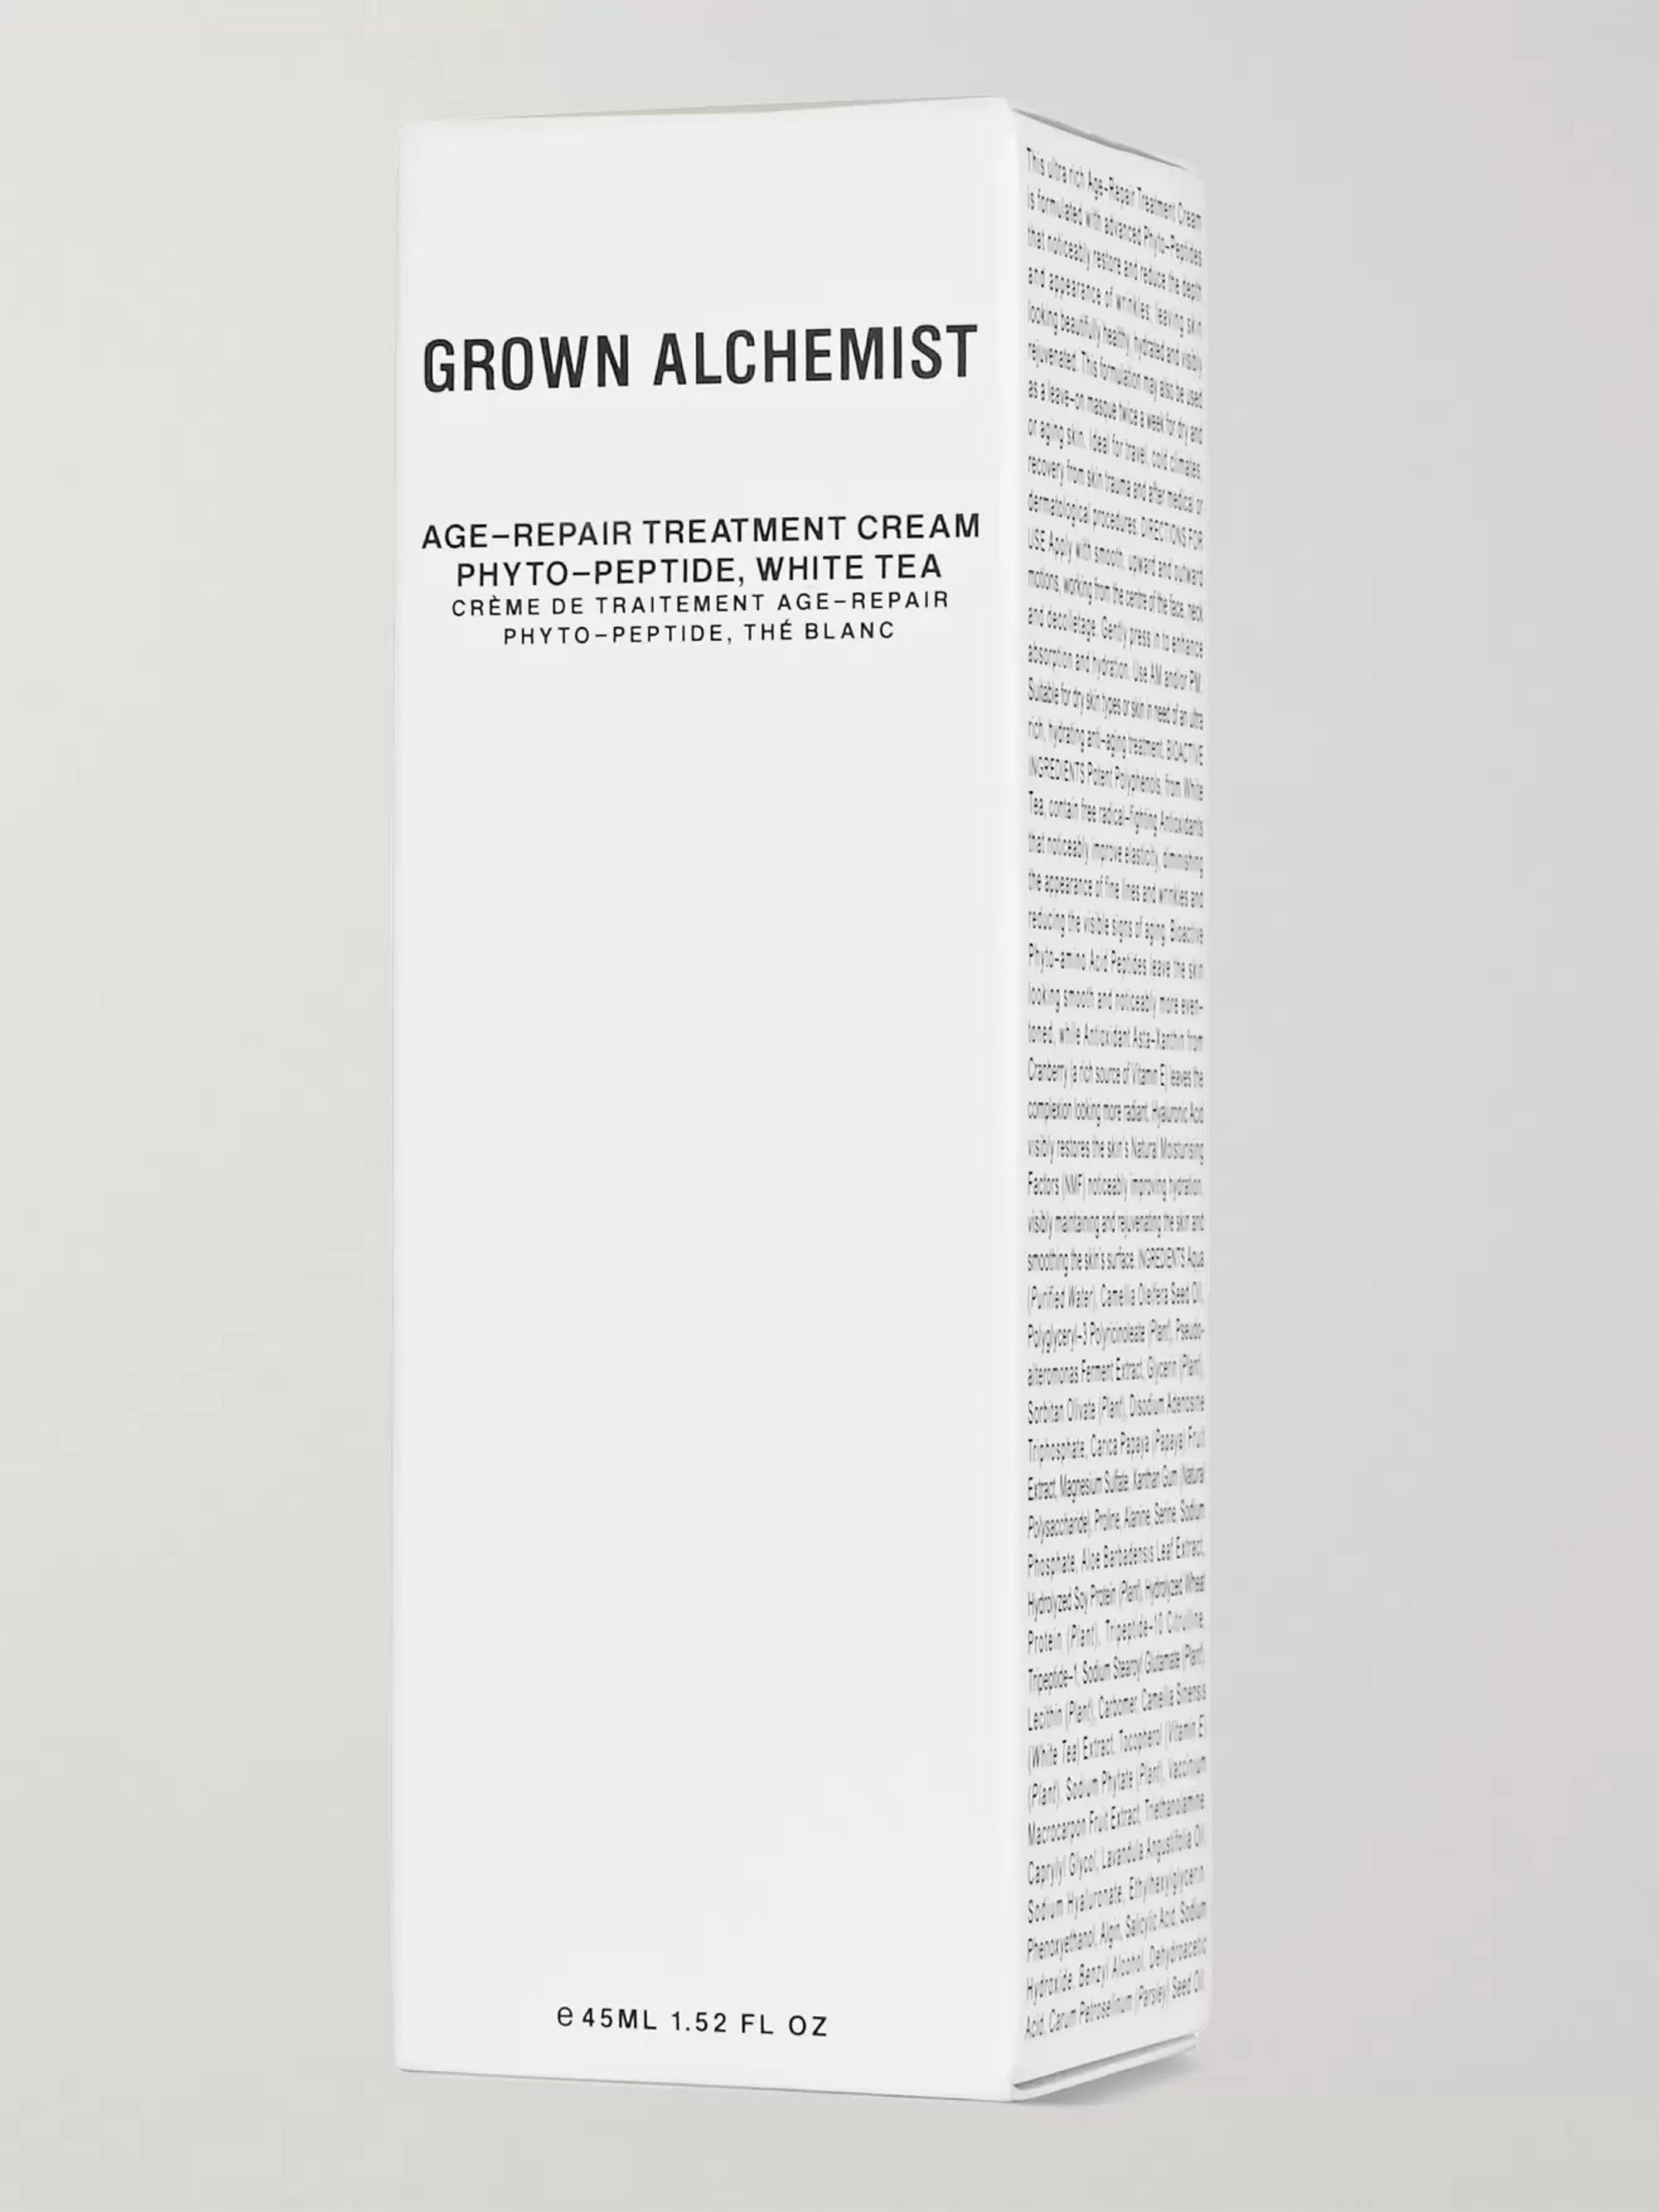 GROWN ALCHEMIST Age-Repair Treatment Cream - Phyto-Peptide & White Tea Extract, 45ml